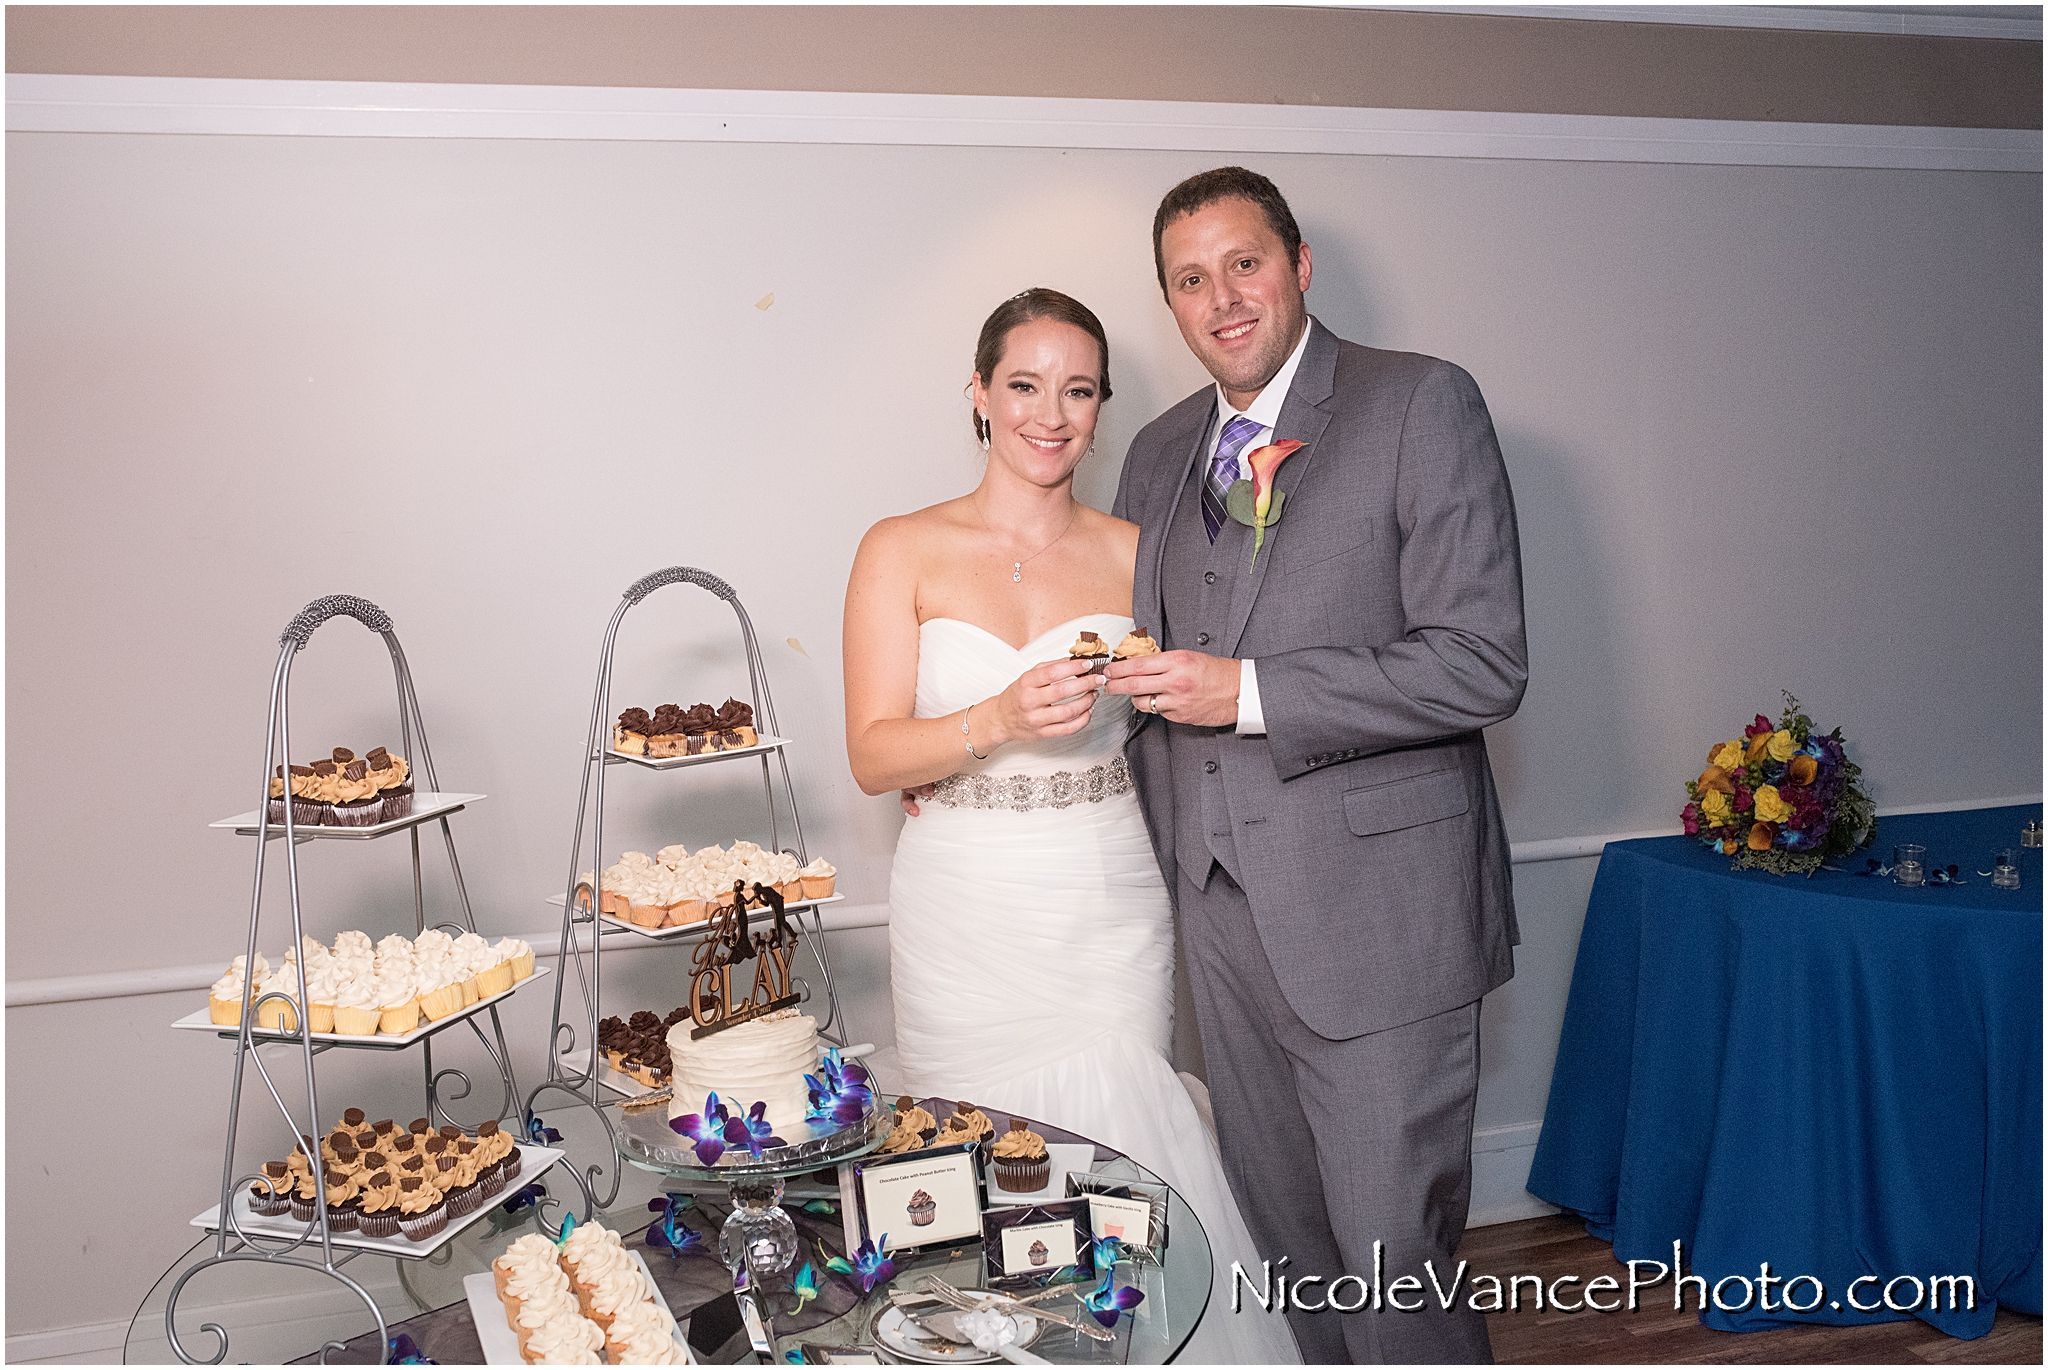 The bride and groom enjoy their cake, provided by Kakealicious at the reception at The Brownstone.